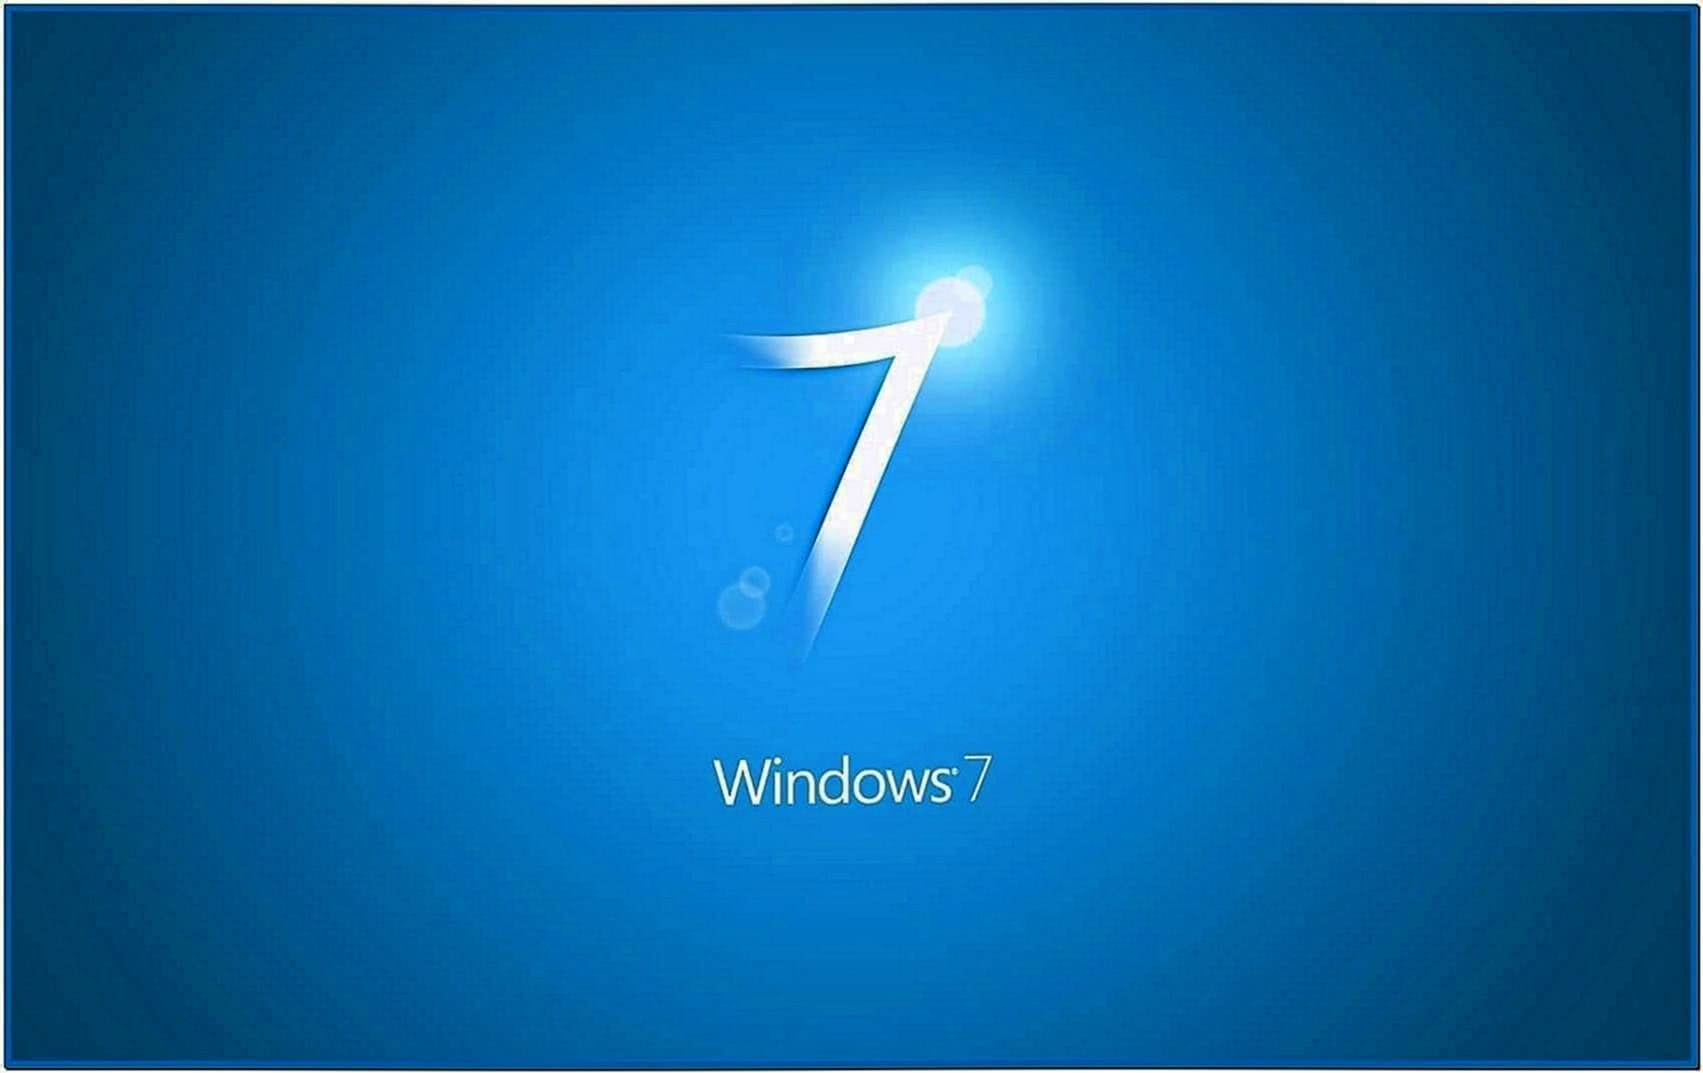 Screensaver as Desktop Background Windows 7